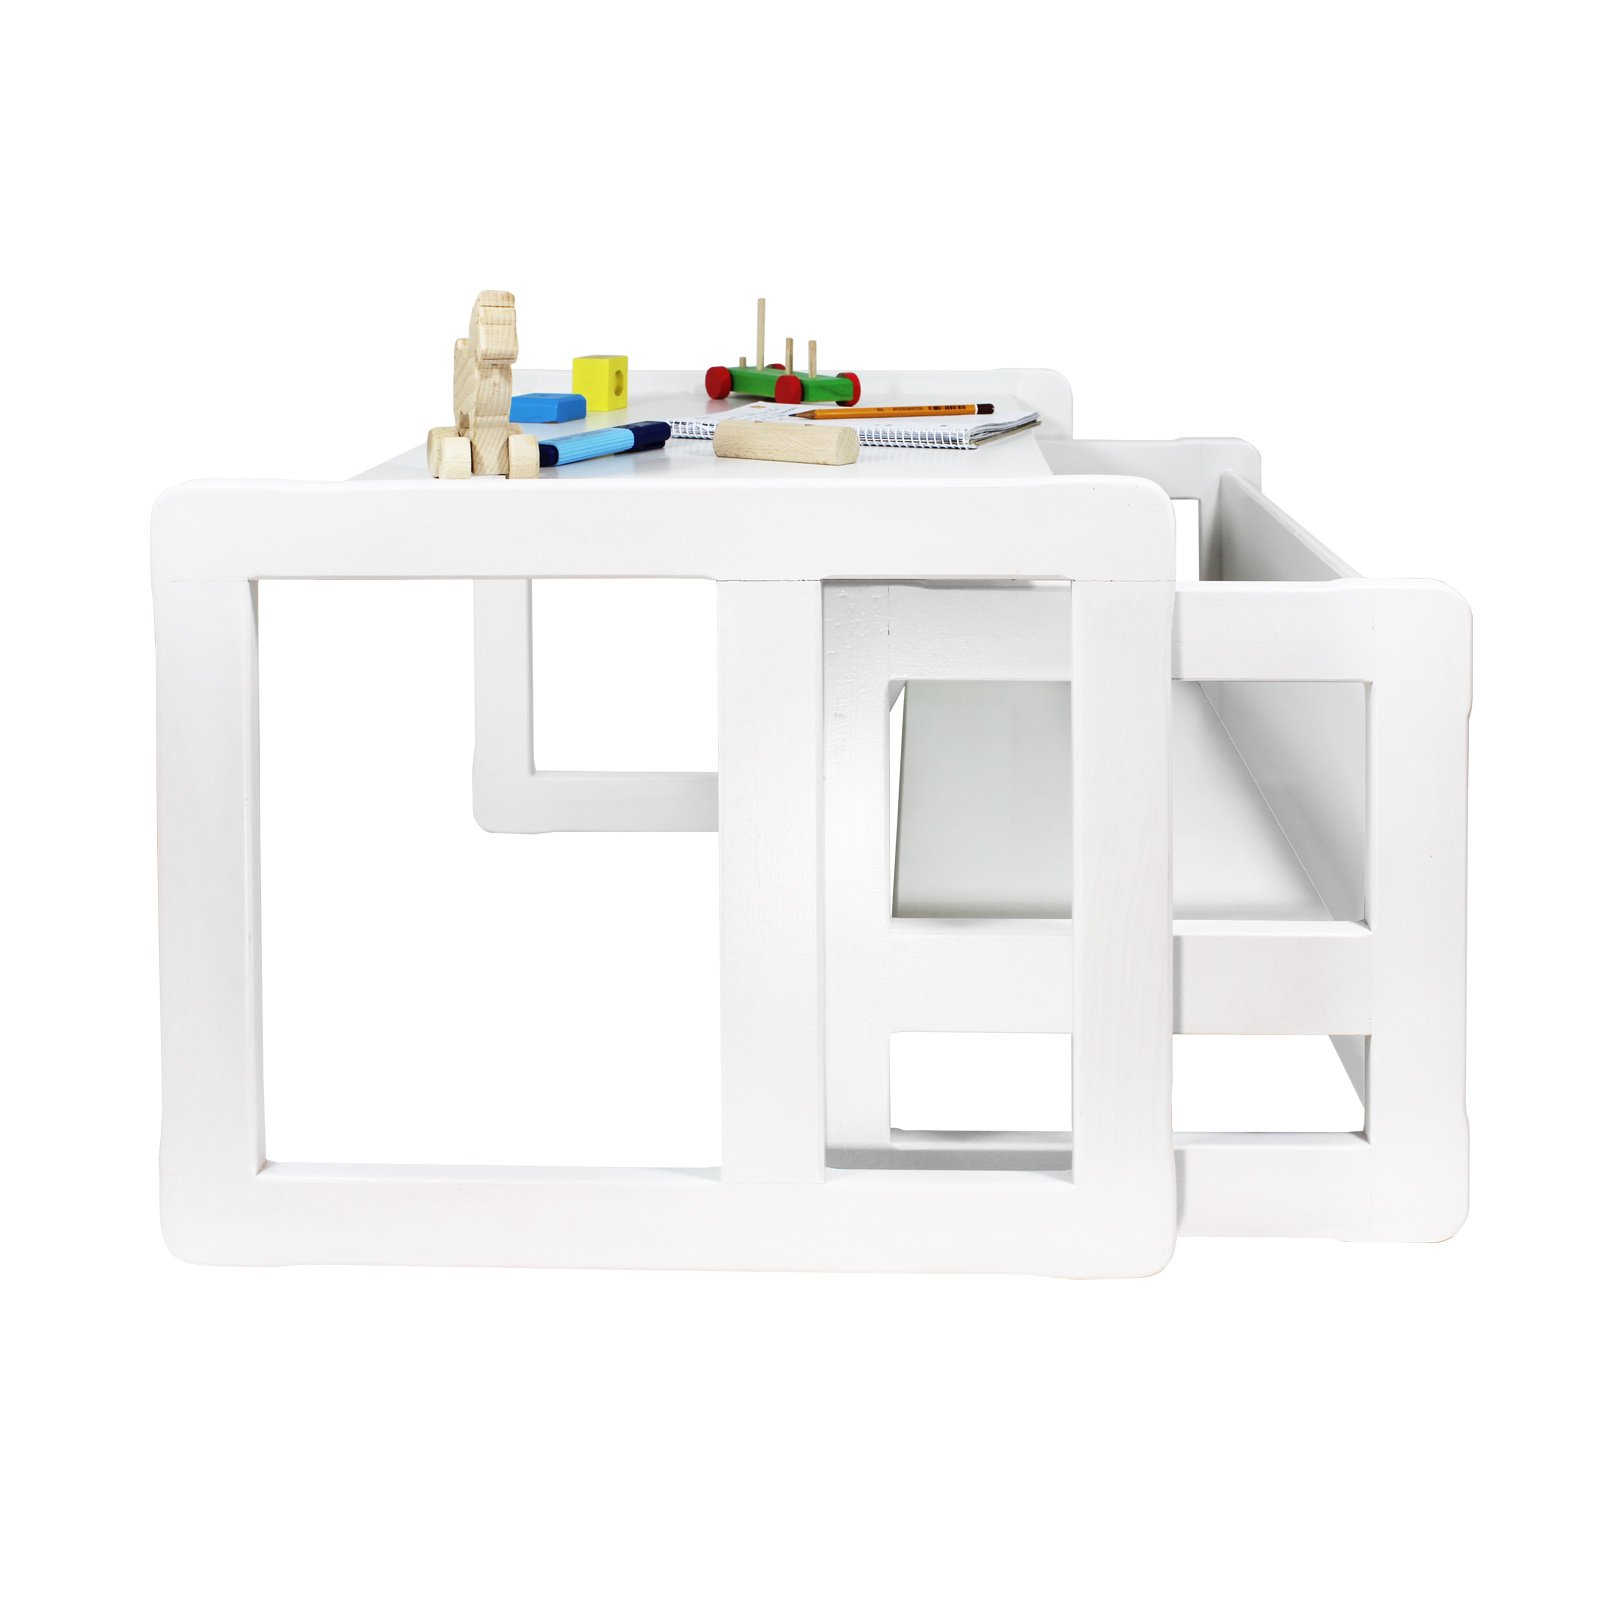 3 in 1 Childrens Multifunctional Furniture Set of 2, One Small Bench or Table and One Large Bench or Table Beech Wood, White Stained by Obique Ltd (Image #5)